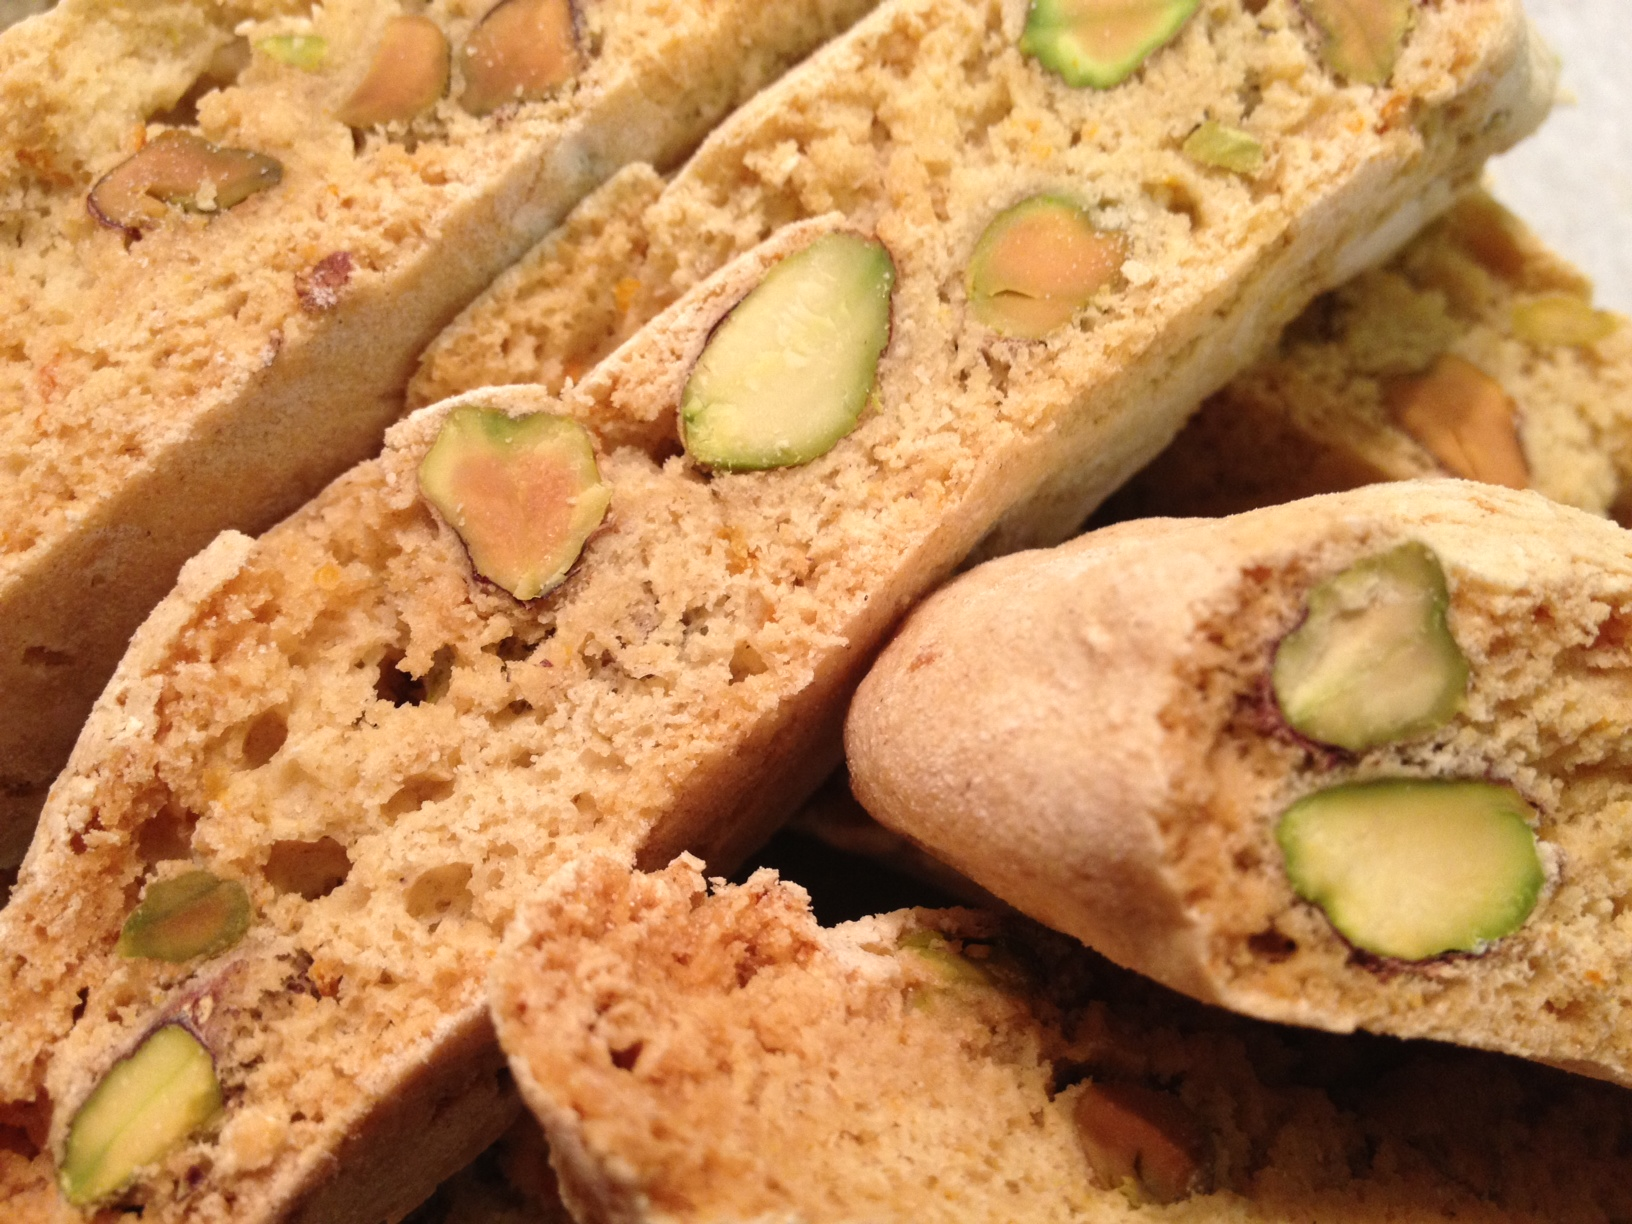 Biscotti Recipes We Love | Serious Eats